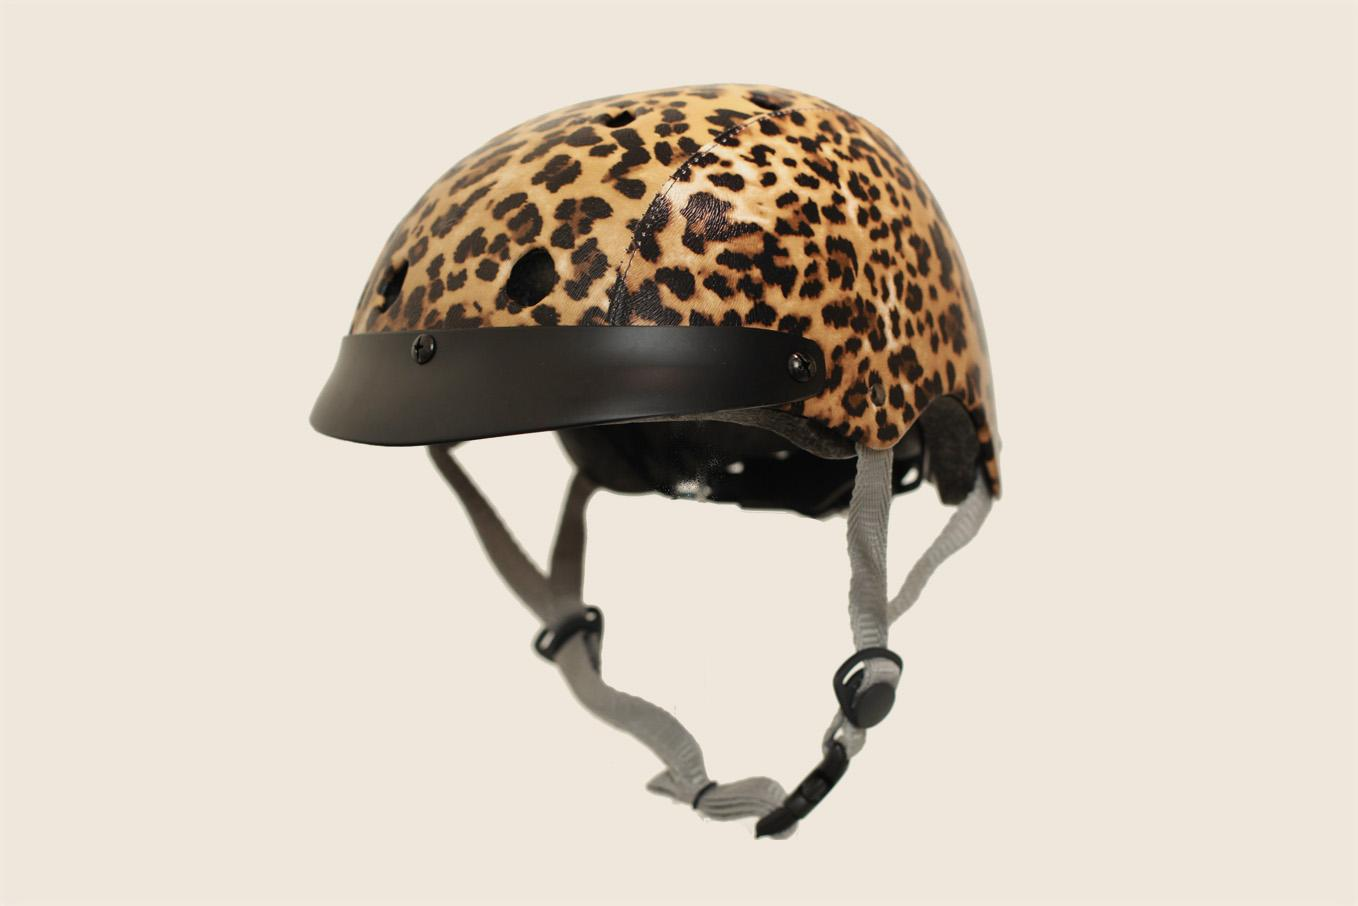 bikepretty, bike pretty, cycle style, cycle chic, bike model, girl on bike, bike fashion, bicycle fashion, bicycle fashion blog, cute bike, girls on bikes, model on bike, bike girls cute, leopard print, cute bike helmet